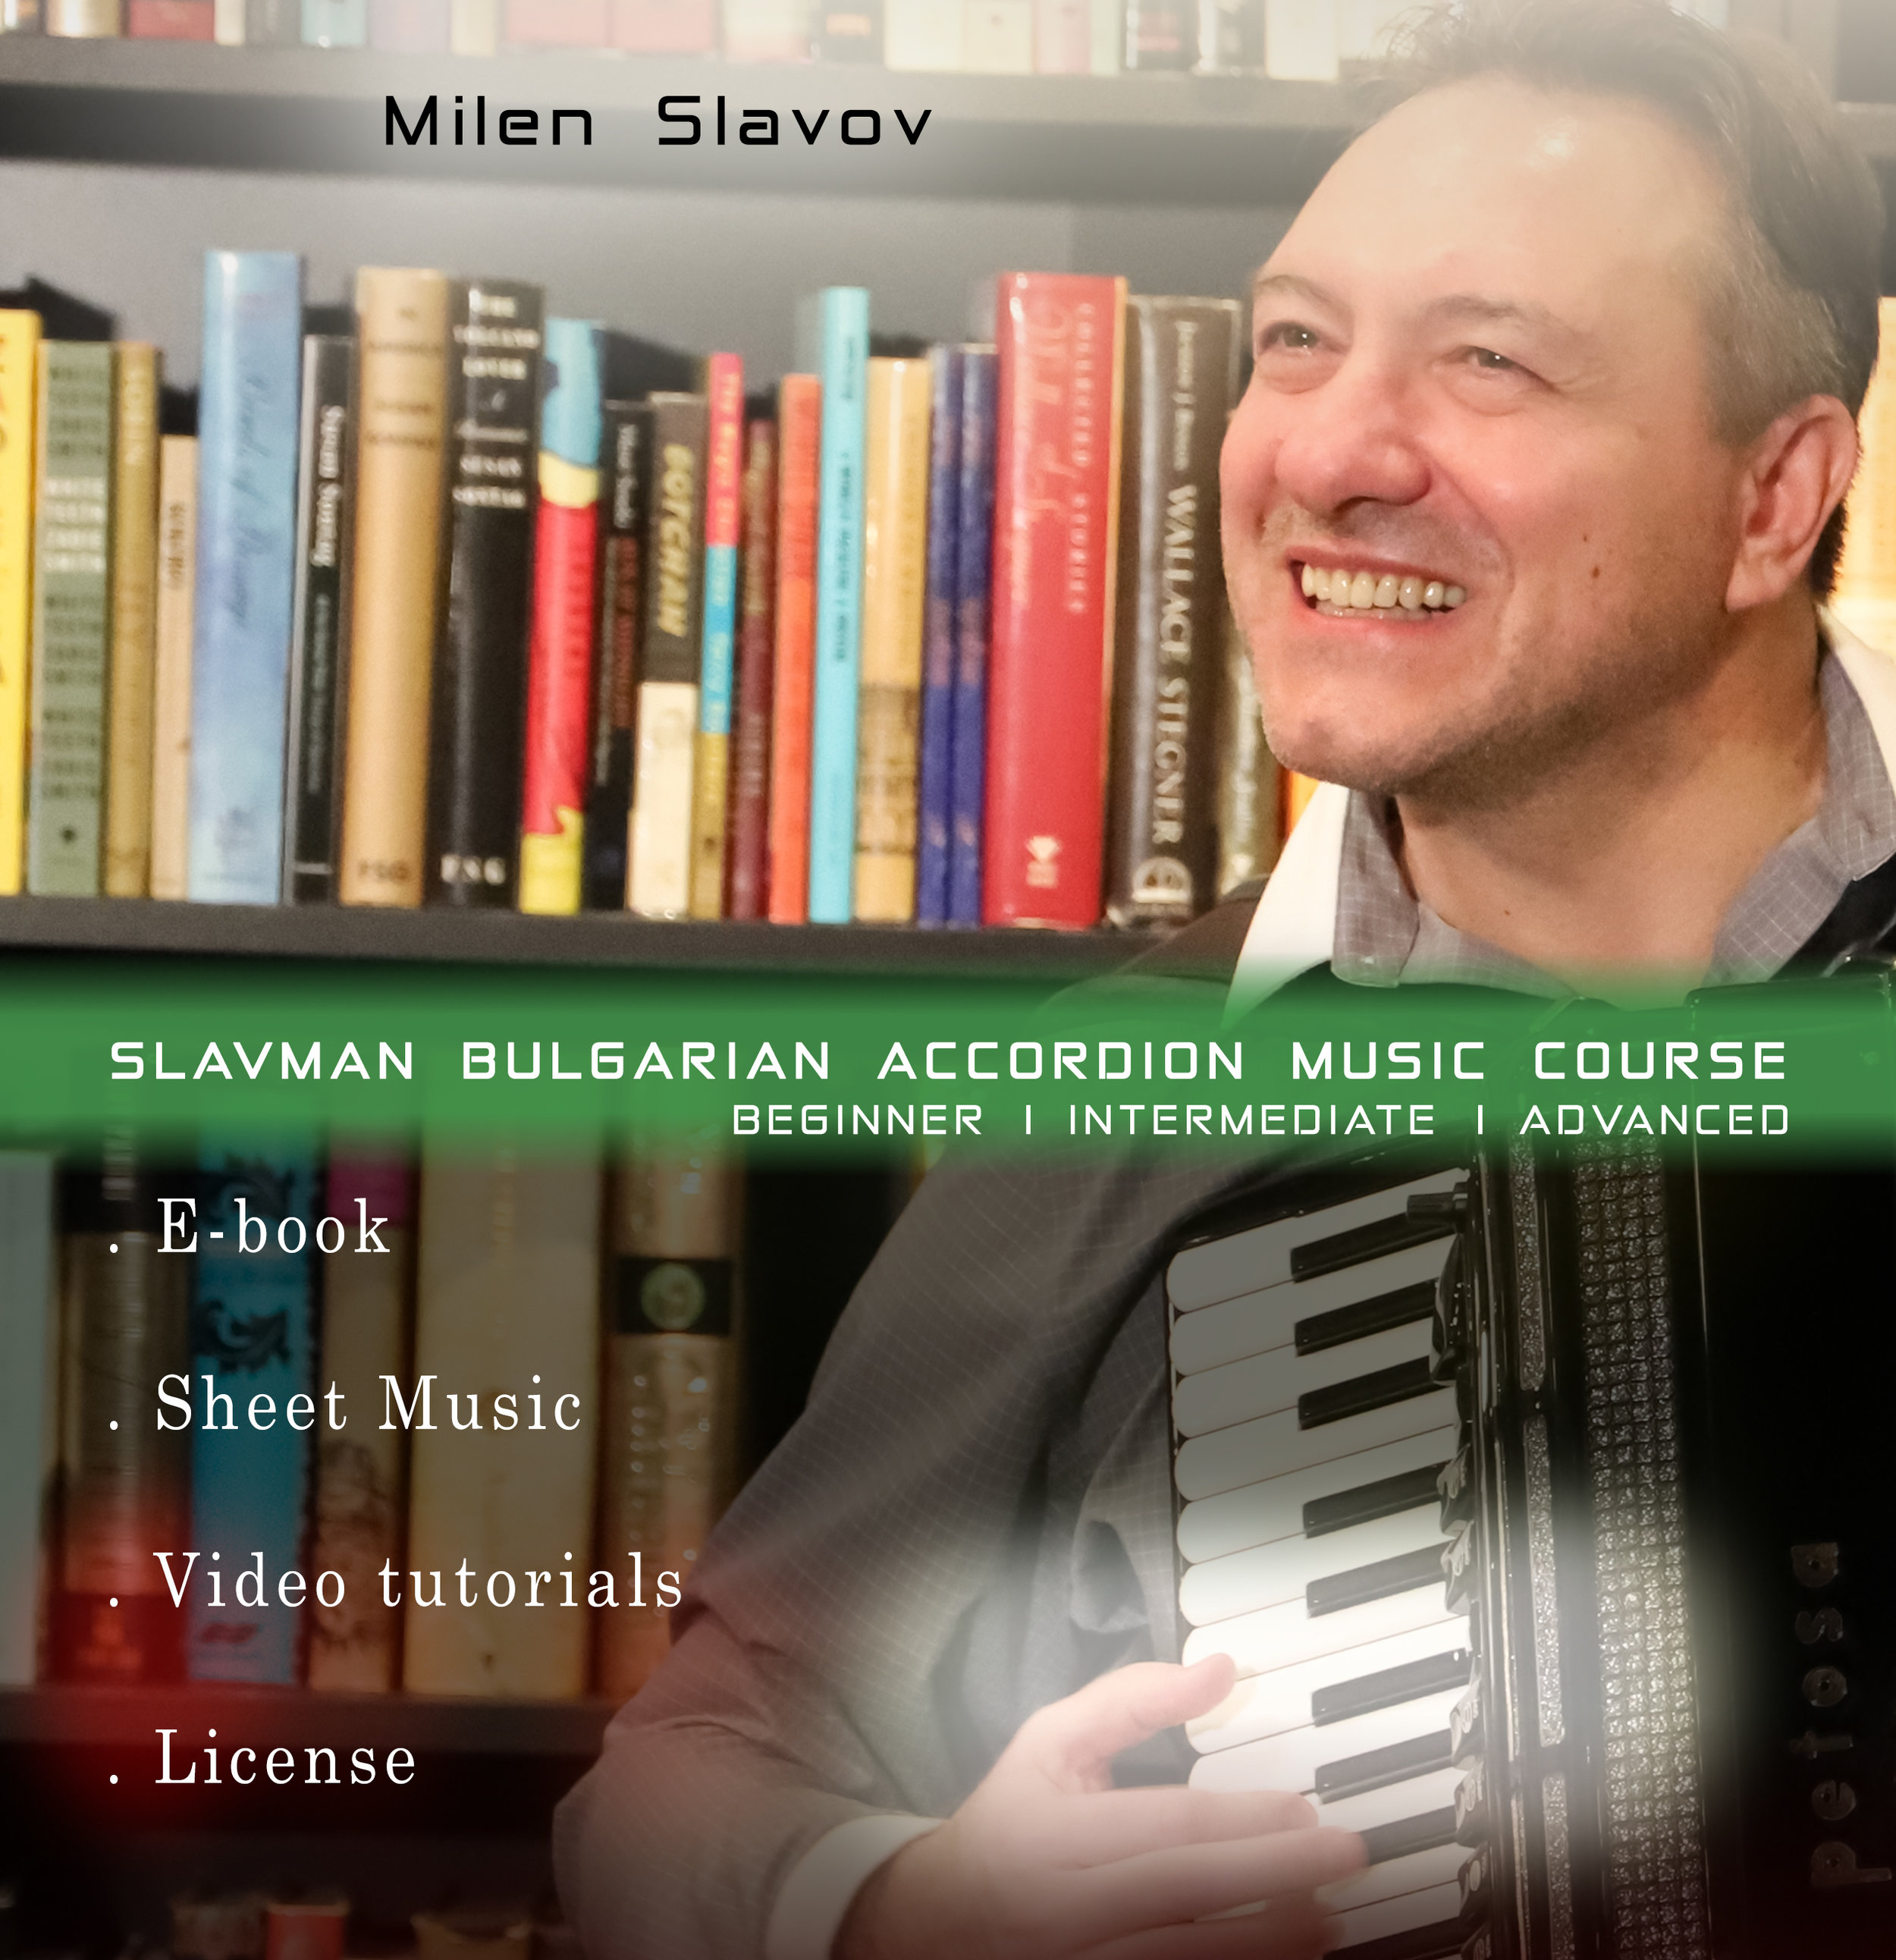 01-bg-accordion-course-main_image.jpg